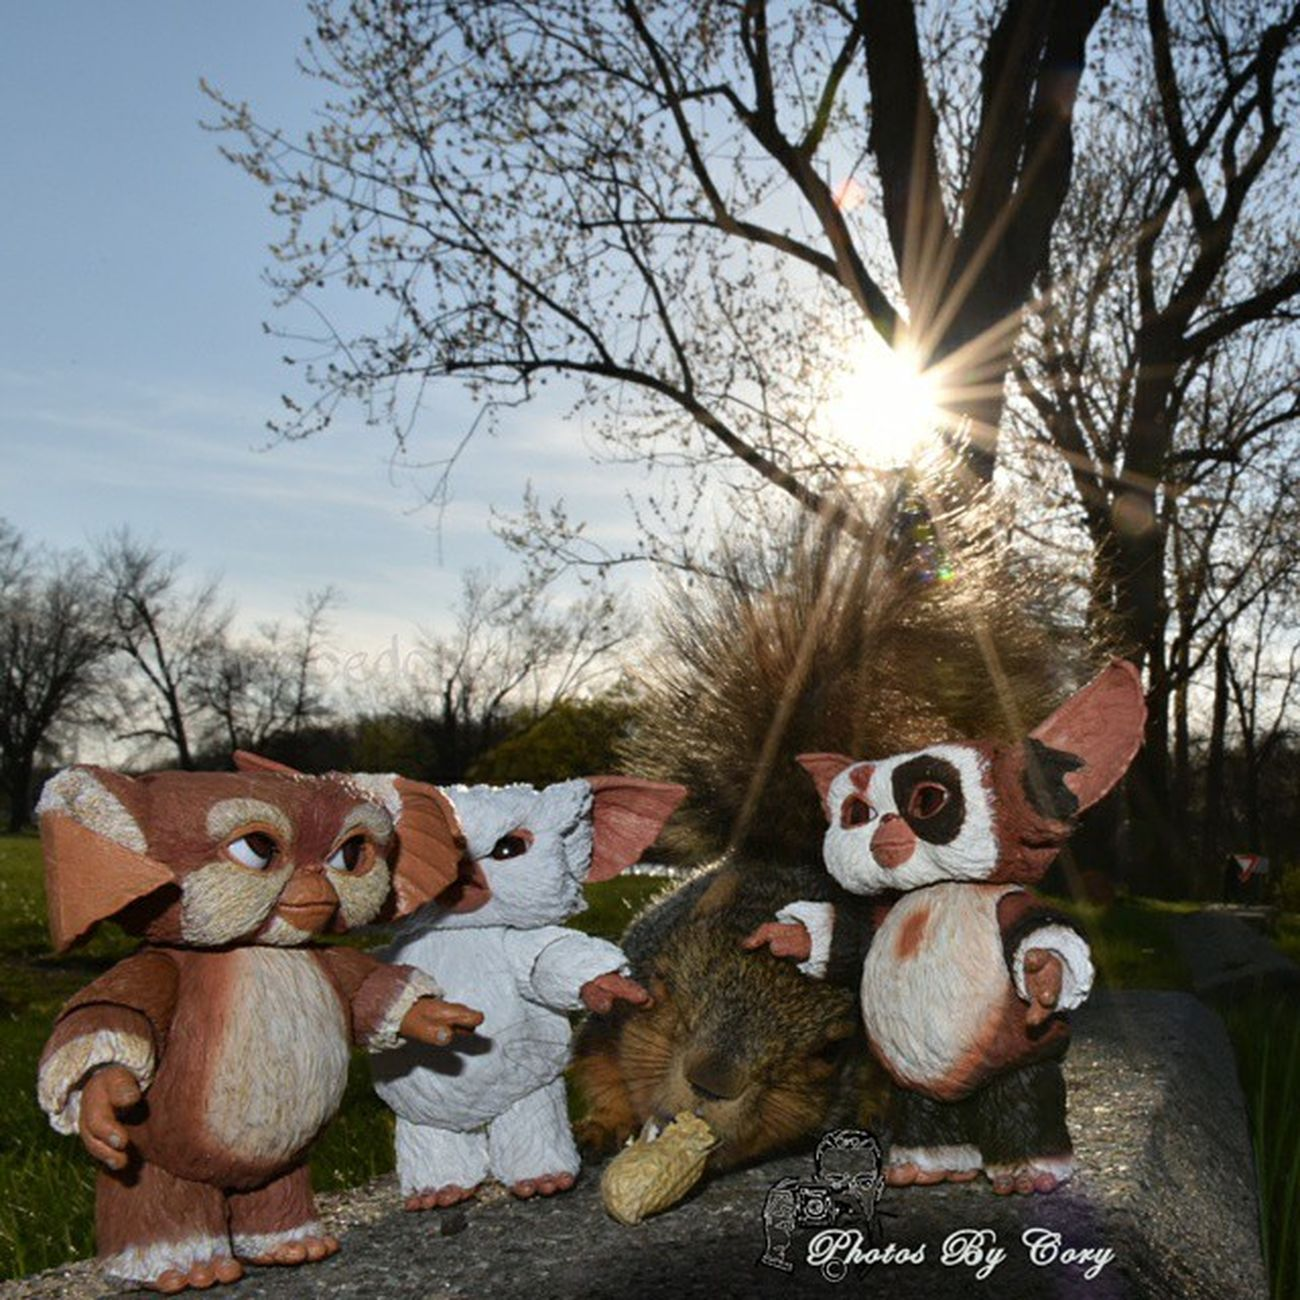 Gary! Stop poking the squirrel in the eye! Why can't you pet him nice like Zoe and Patches? Neca Necatoys Funwiththesquirrels FunWithMogwaiGary FunWithMogwaiZoe FunWithMogwaiPatches